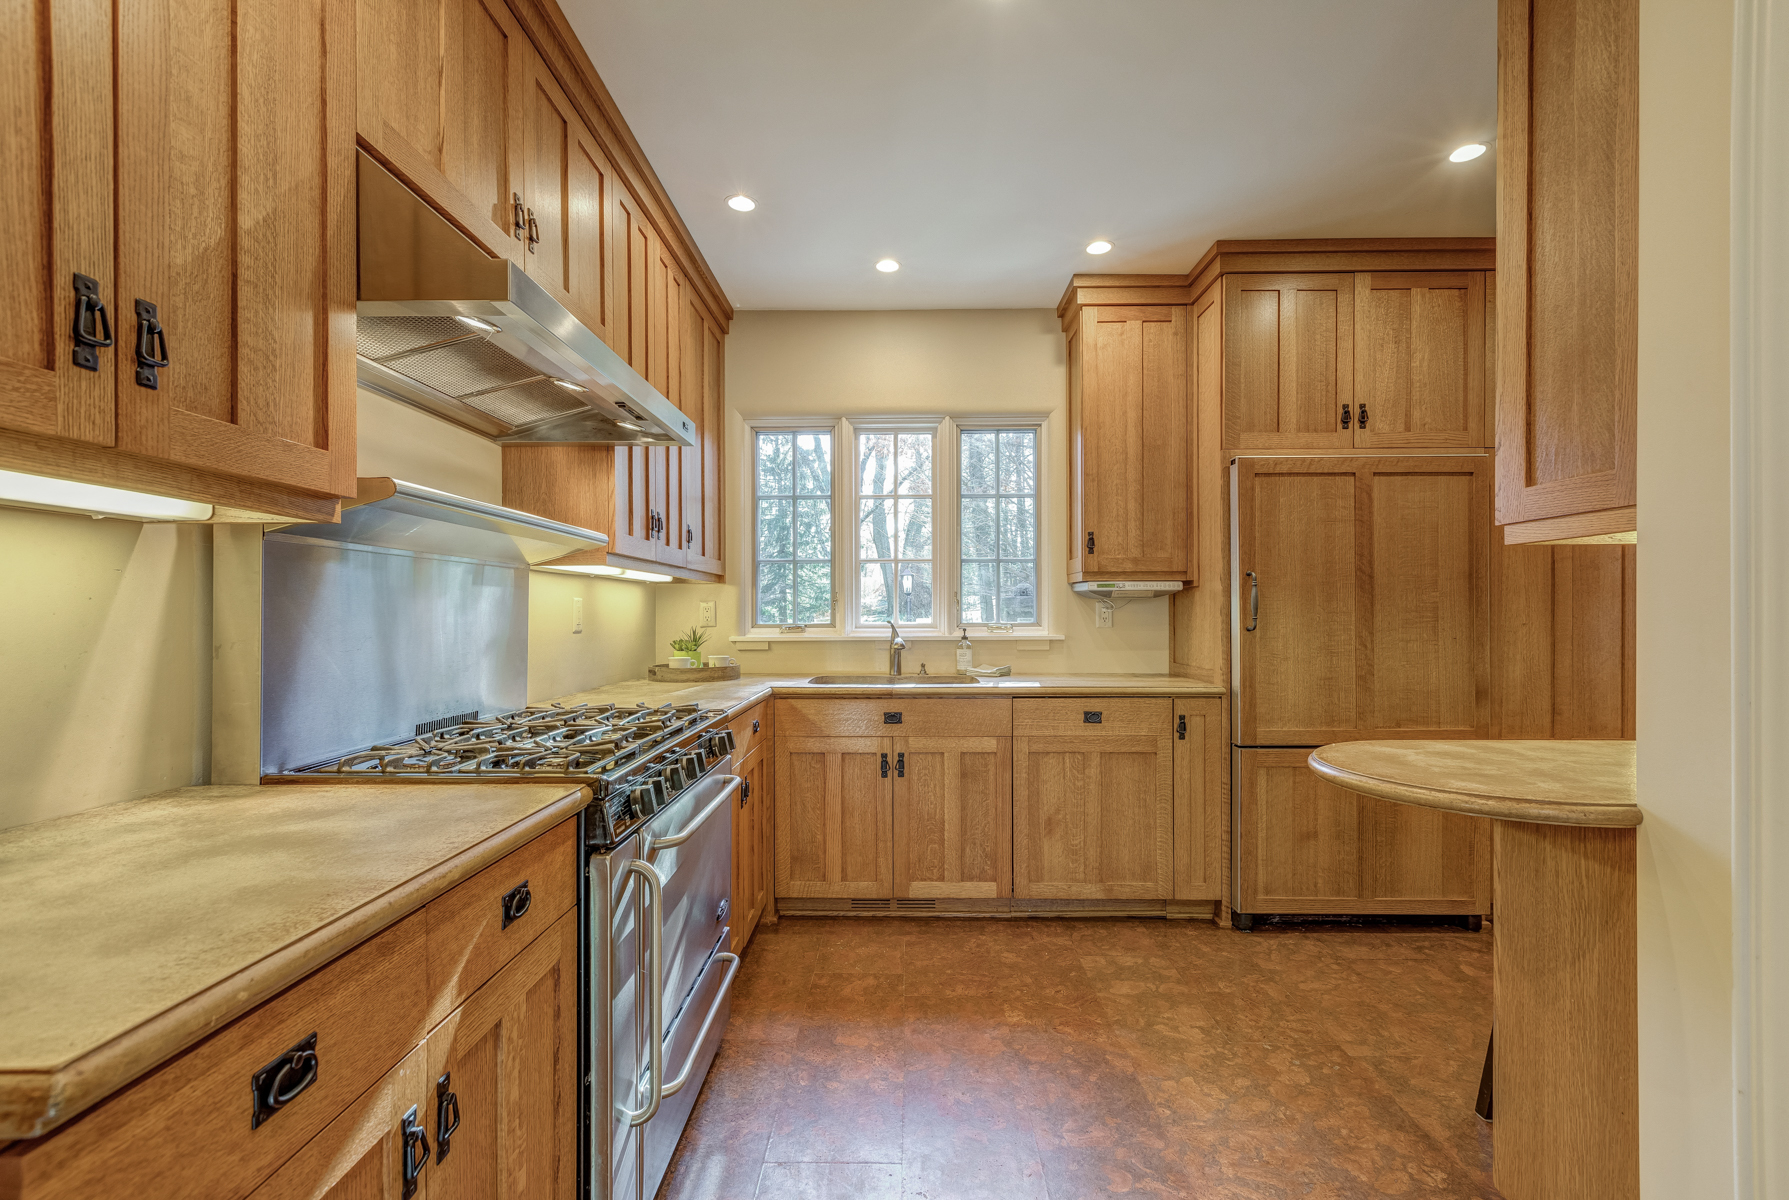 7. Kitchen with Breakfast Bar_53A1752_3_4